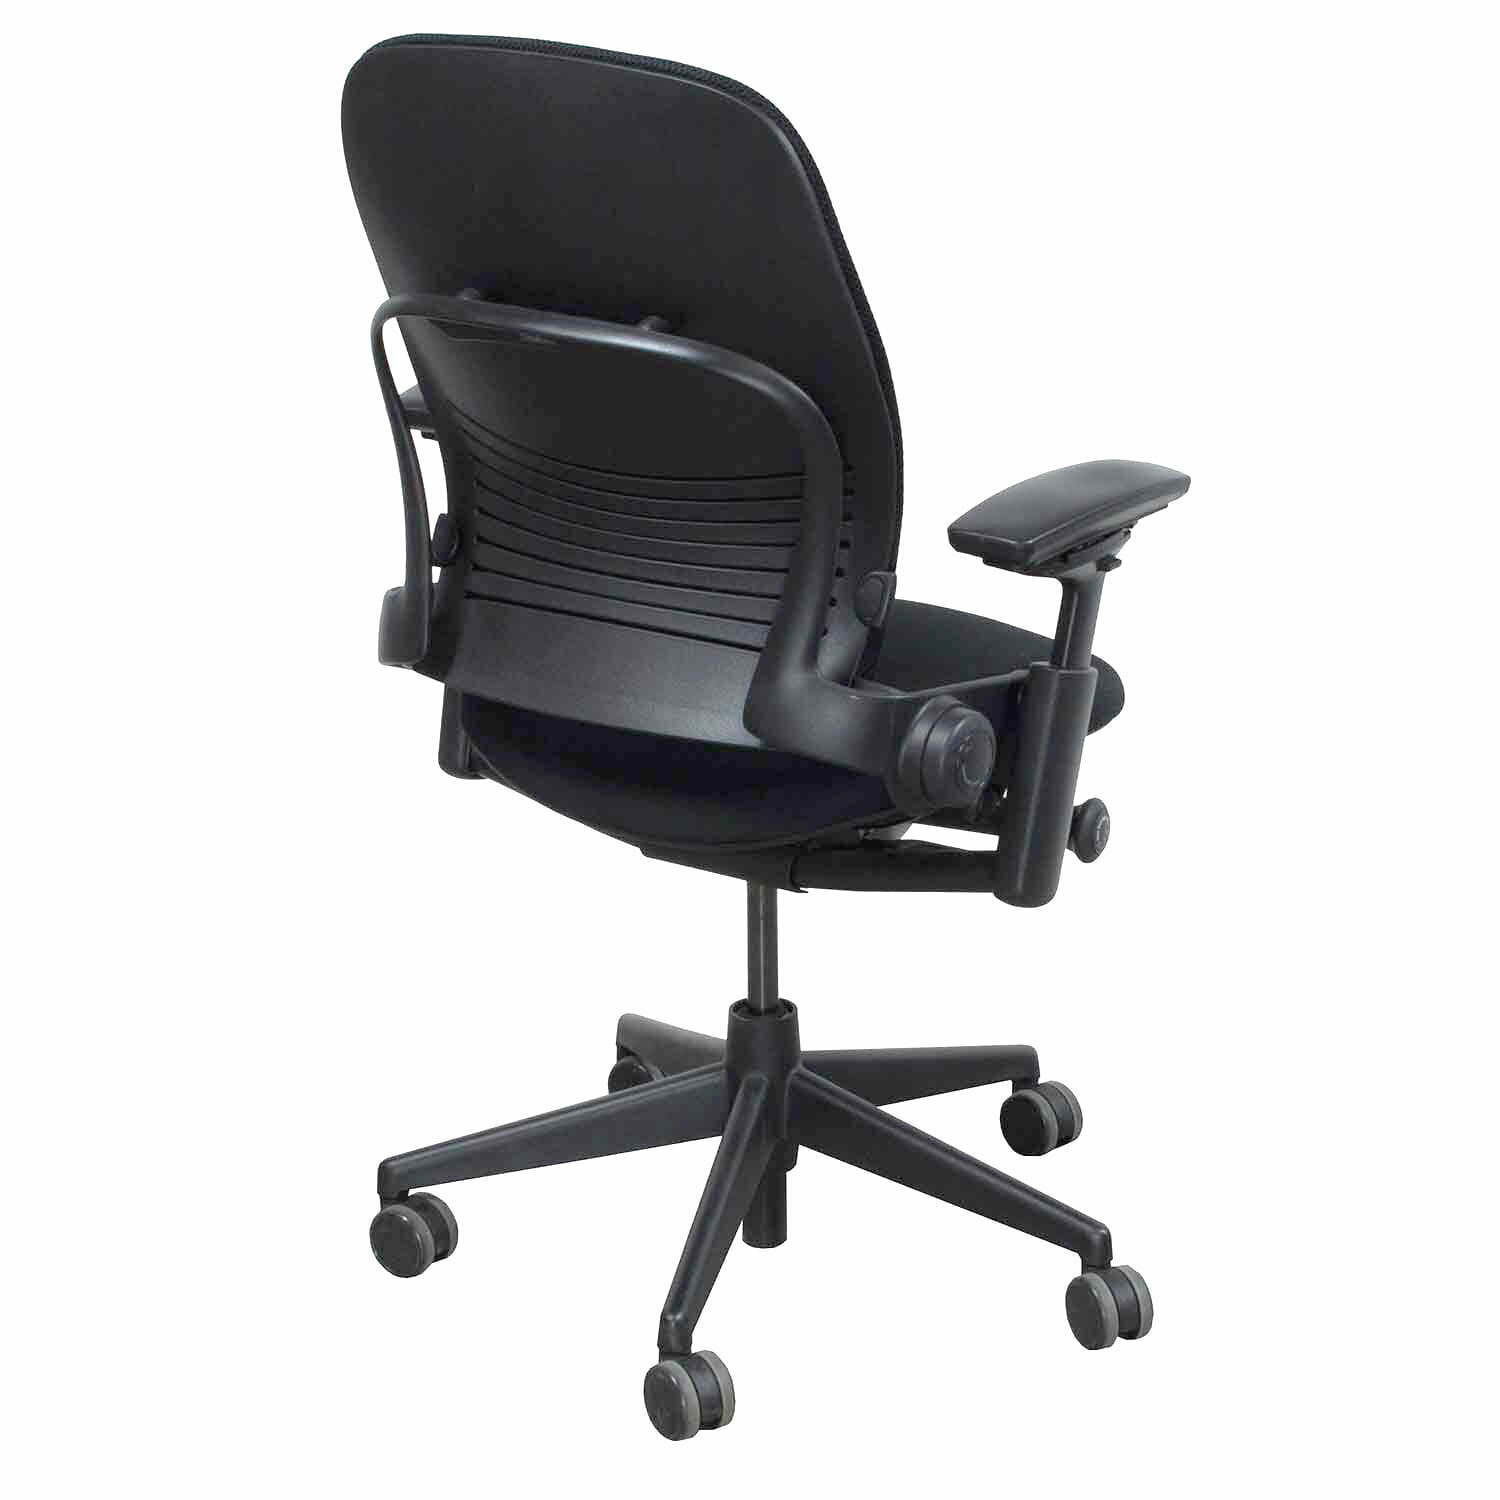 Steelcase Chair Parts Steelcase Leap 2 Office Chair Unisource Office Furniture Parts Inc